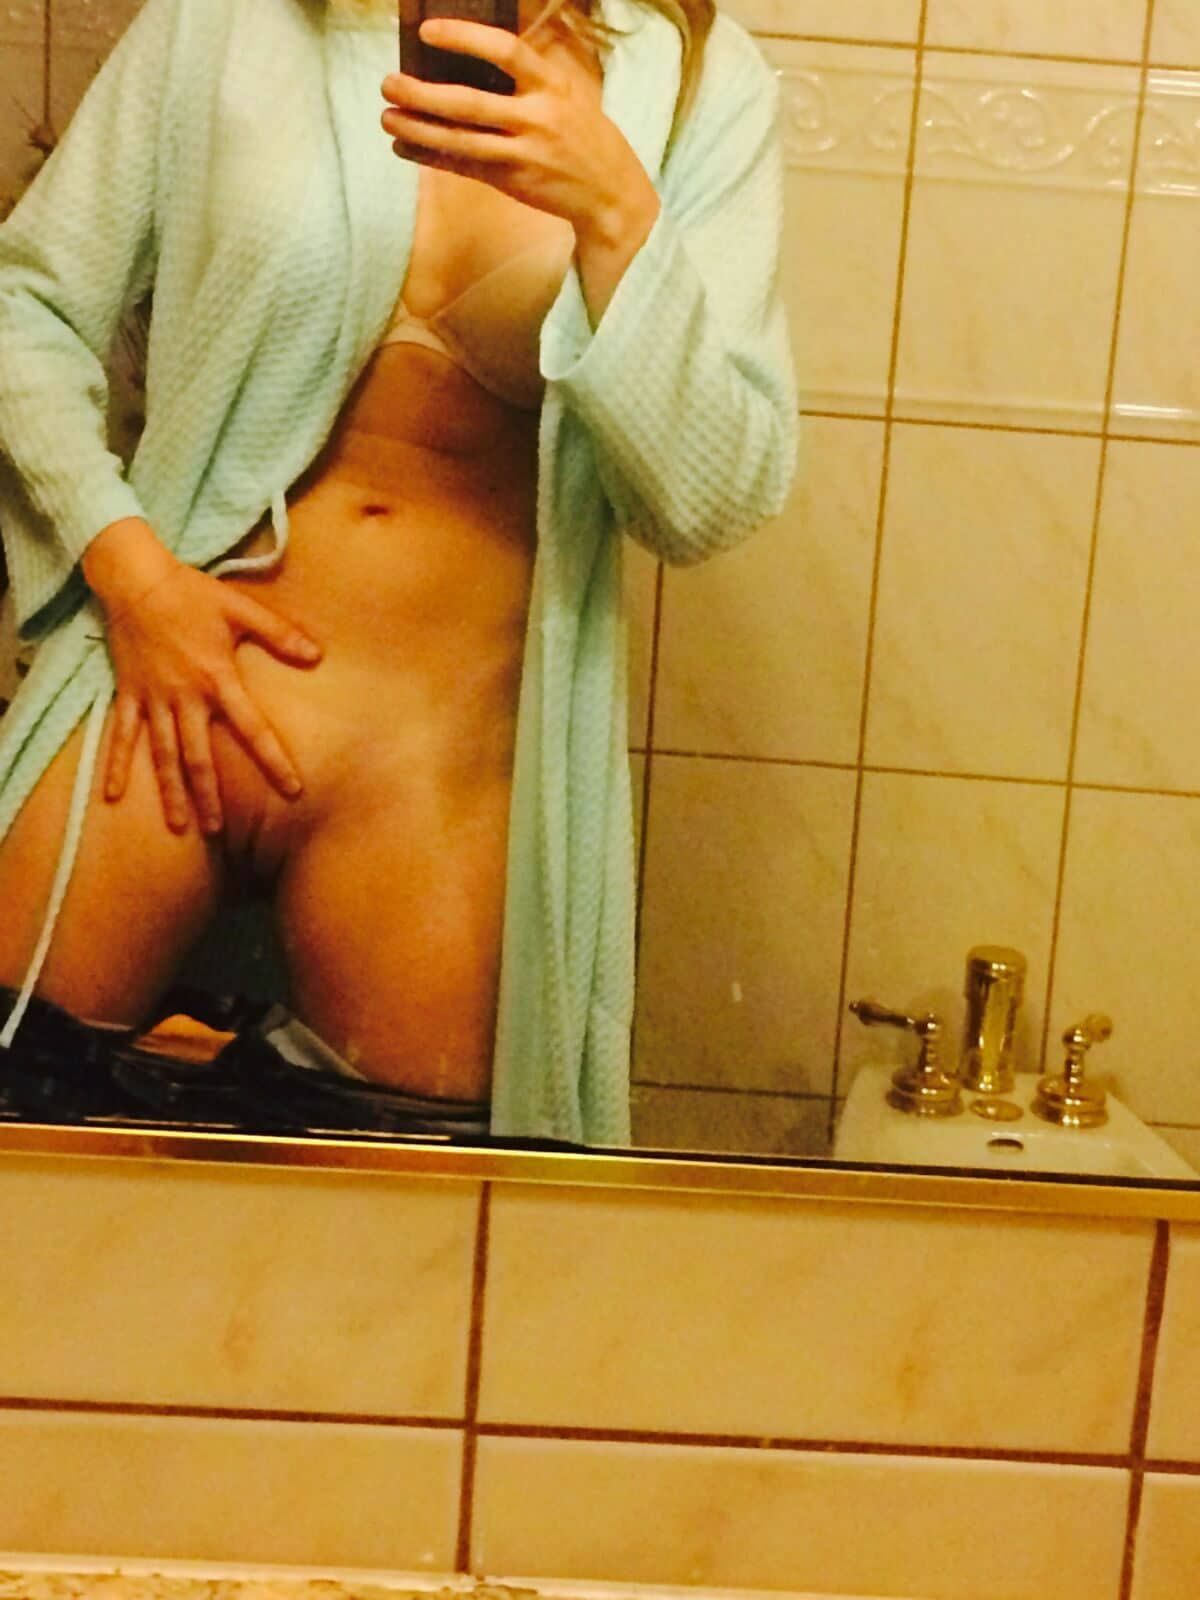 AJ Michalka taking a bathroom selfie in a blue robe with no panties on